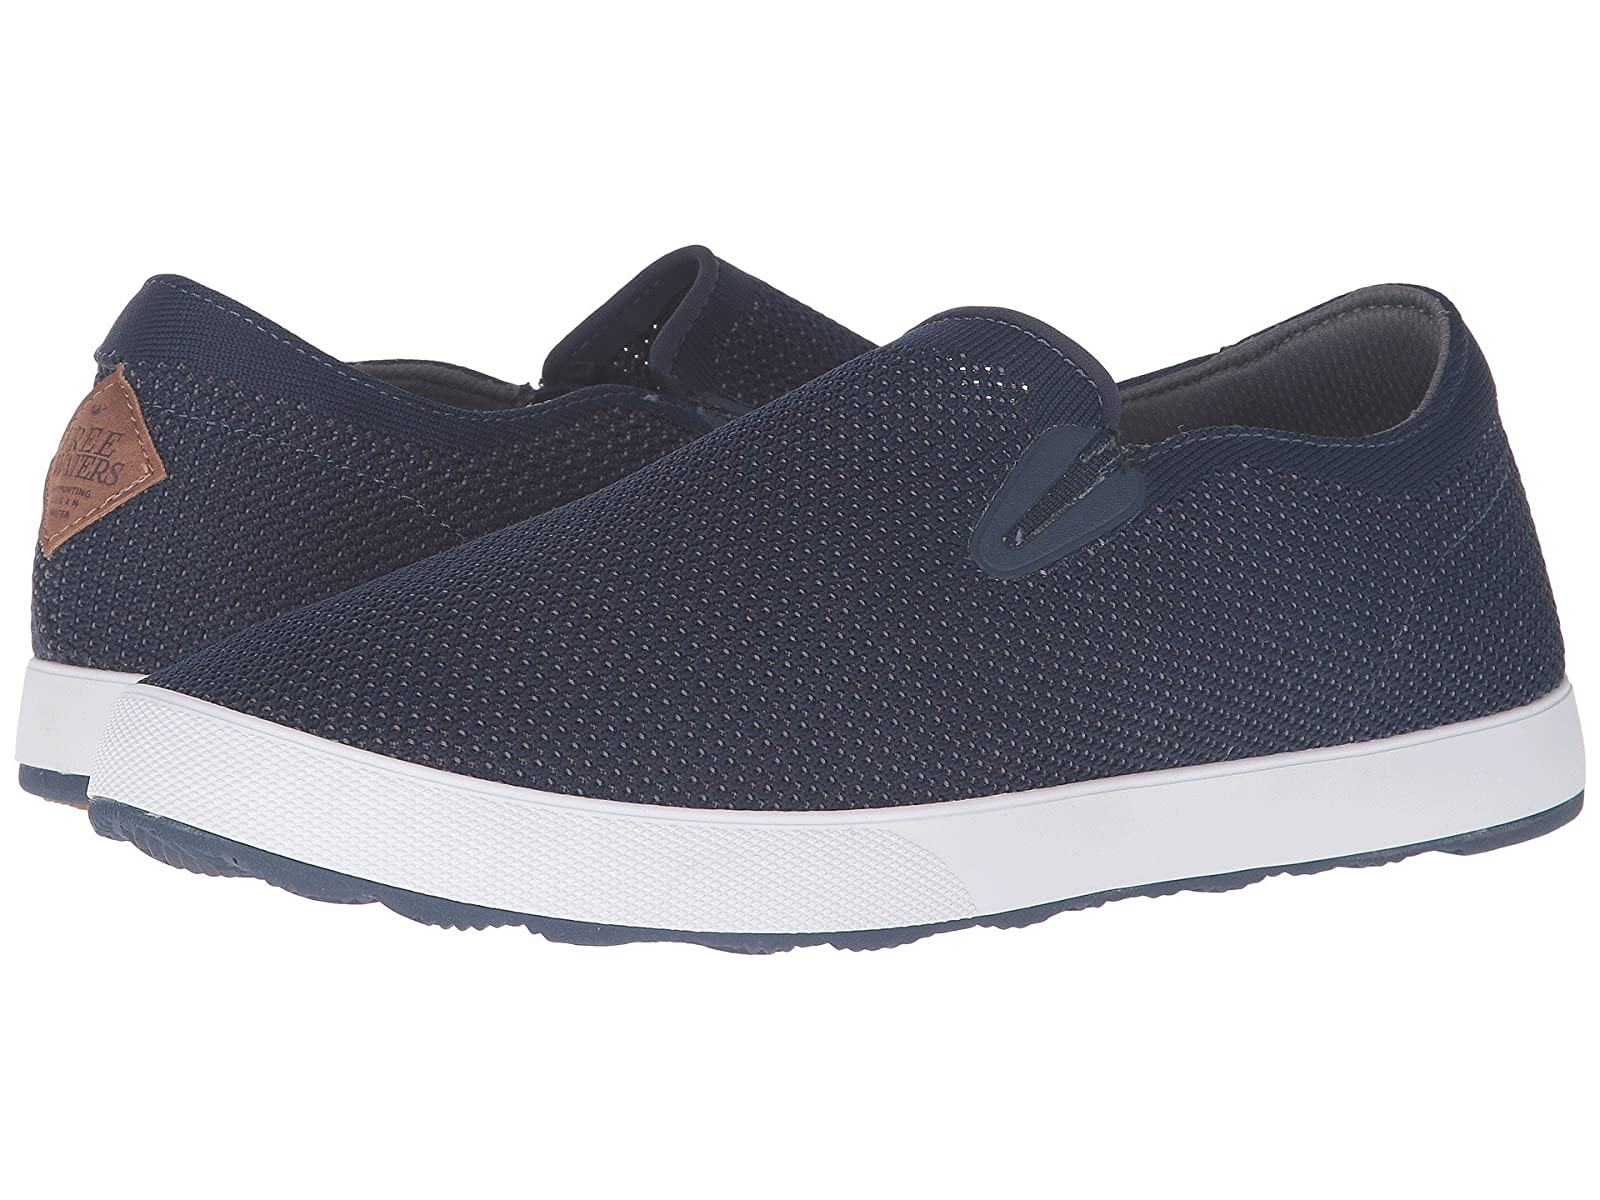 Freewaters Sky Slip-On Styles Knit -Gentleman/Lady- Different Styles Slip-On And Styles 32c0ef